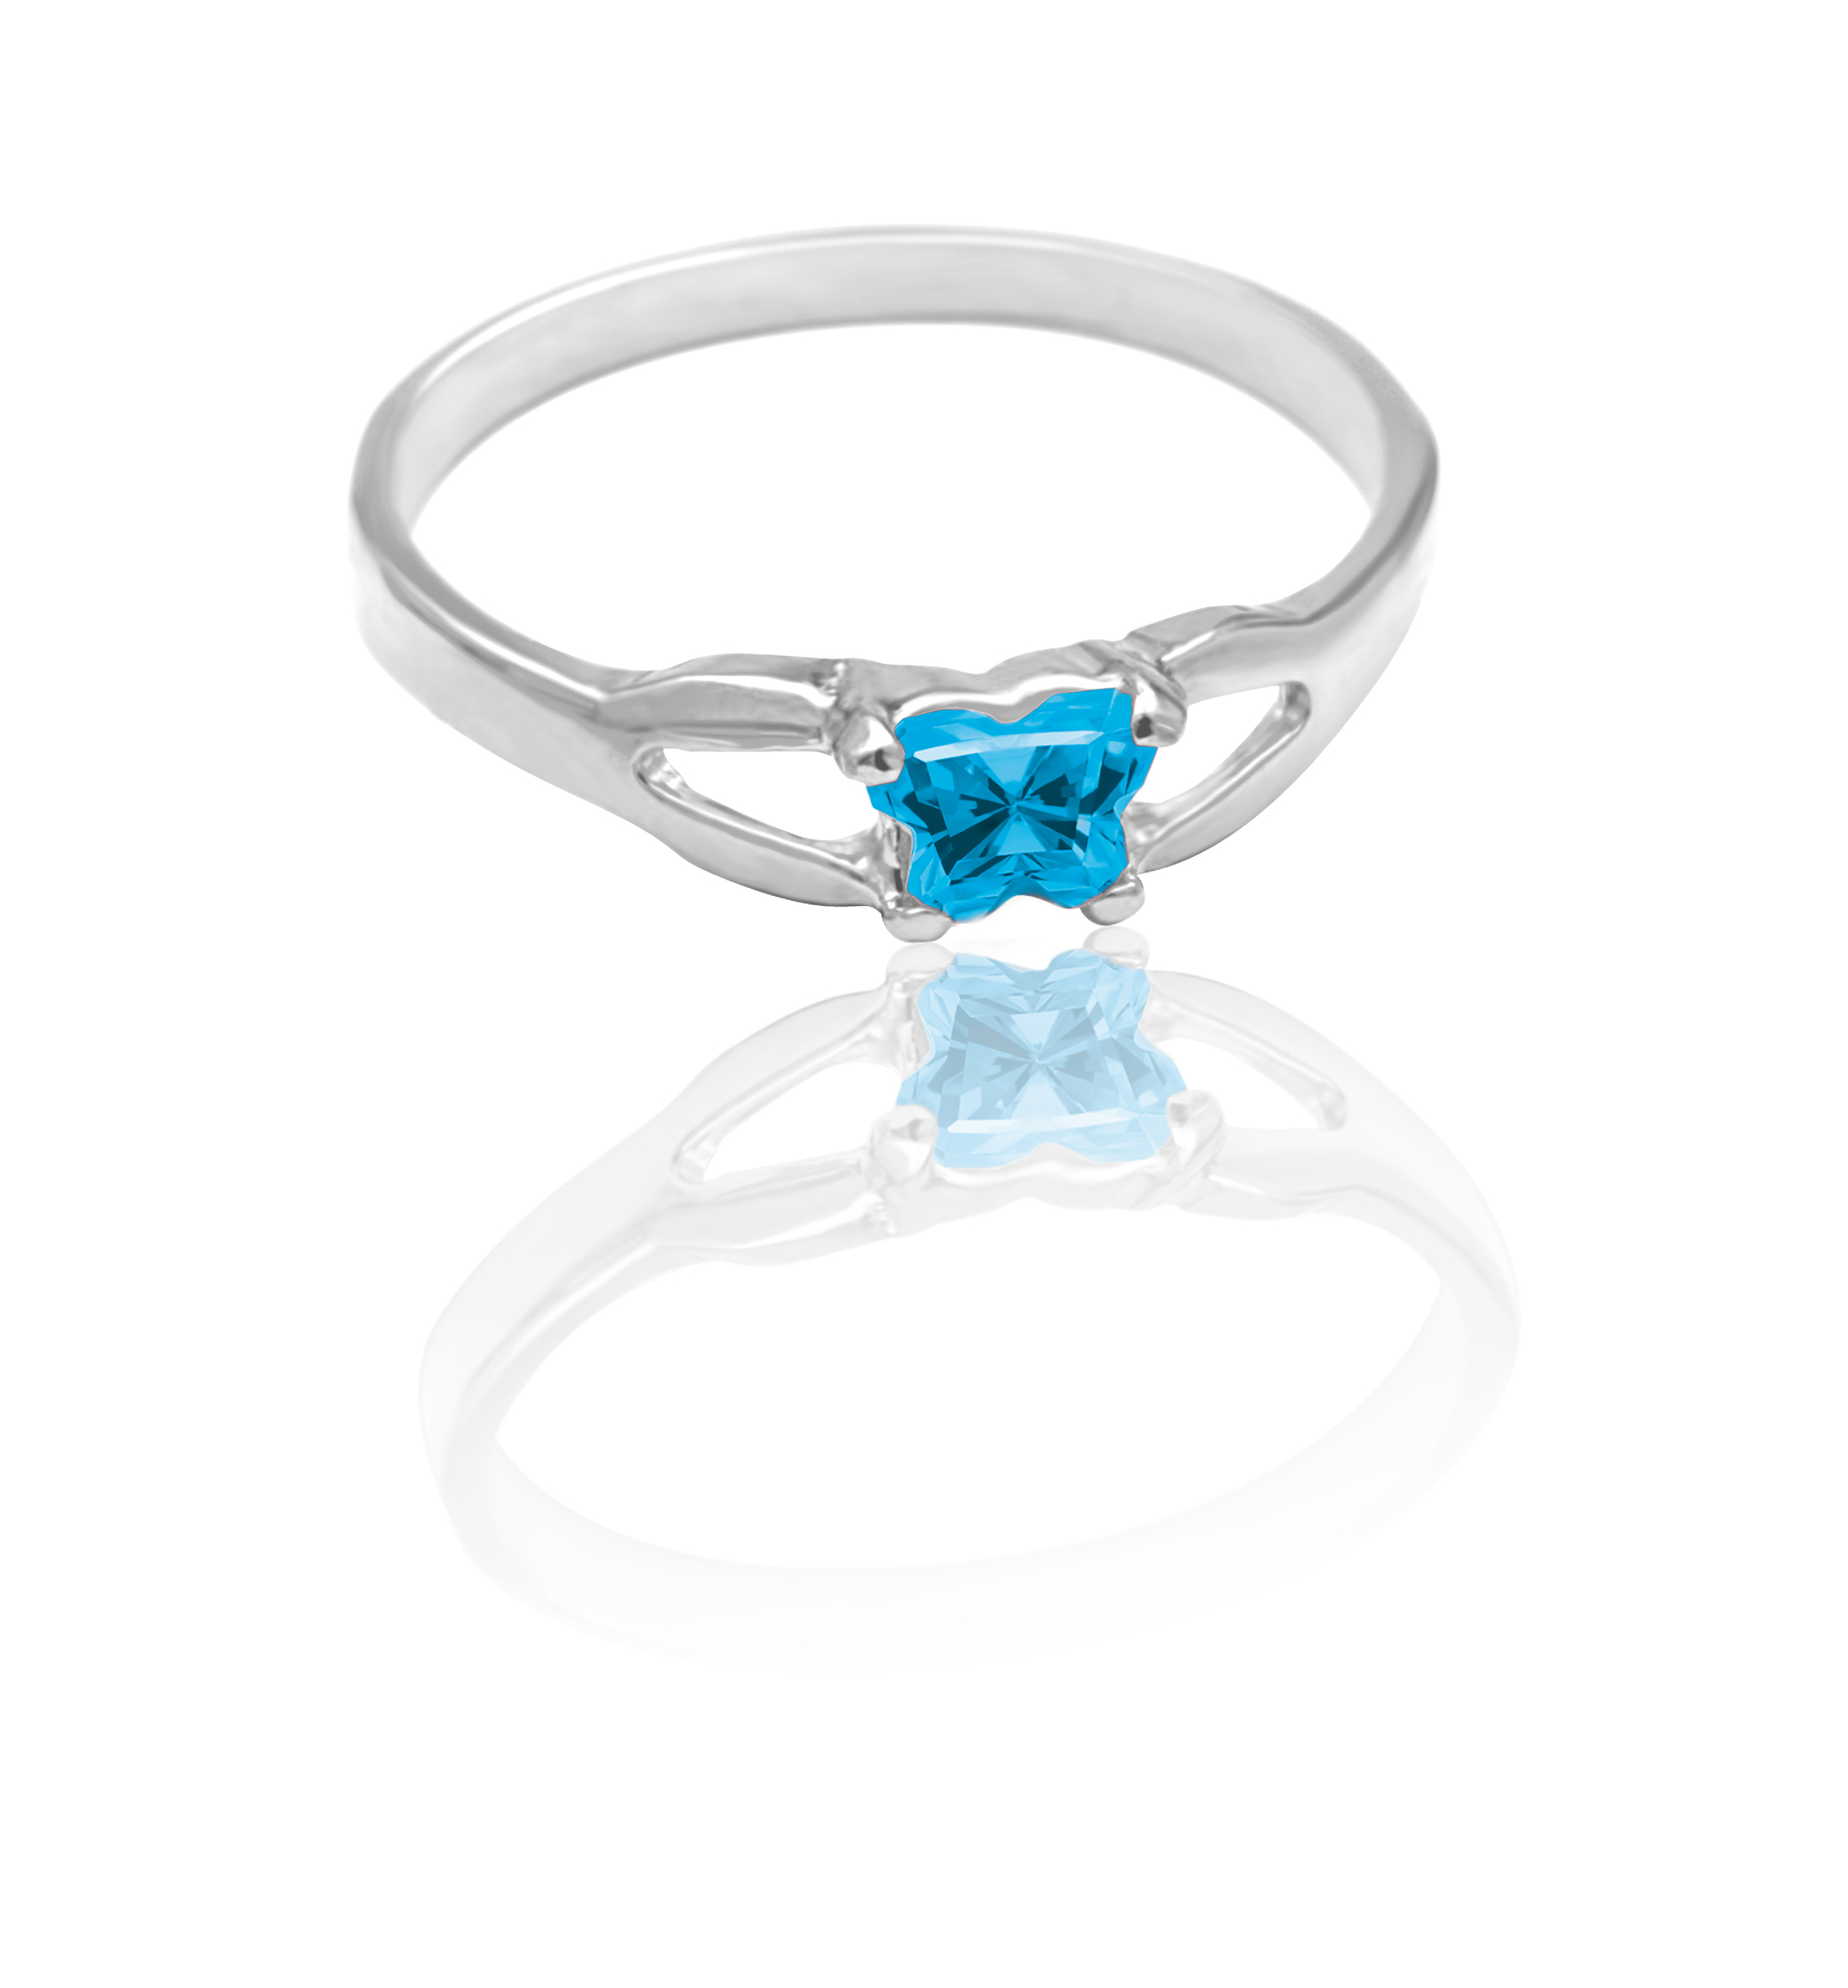 children's ring in sterling silver with blue cubic zirconia (month of December)*